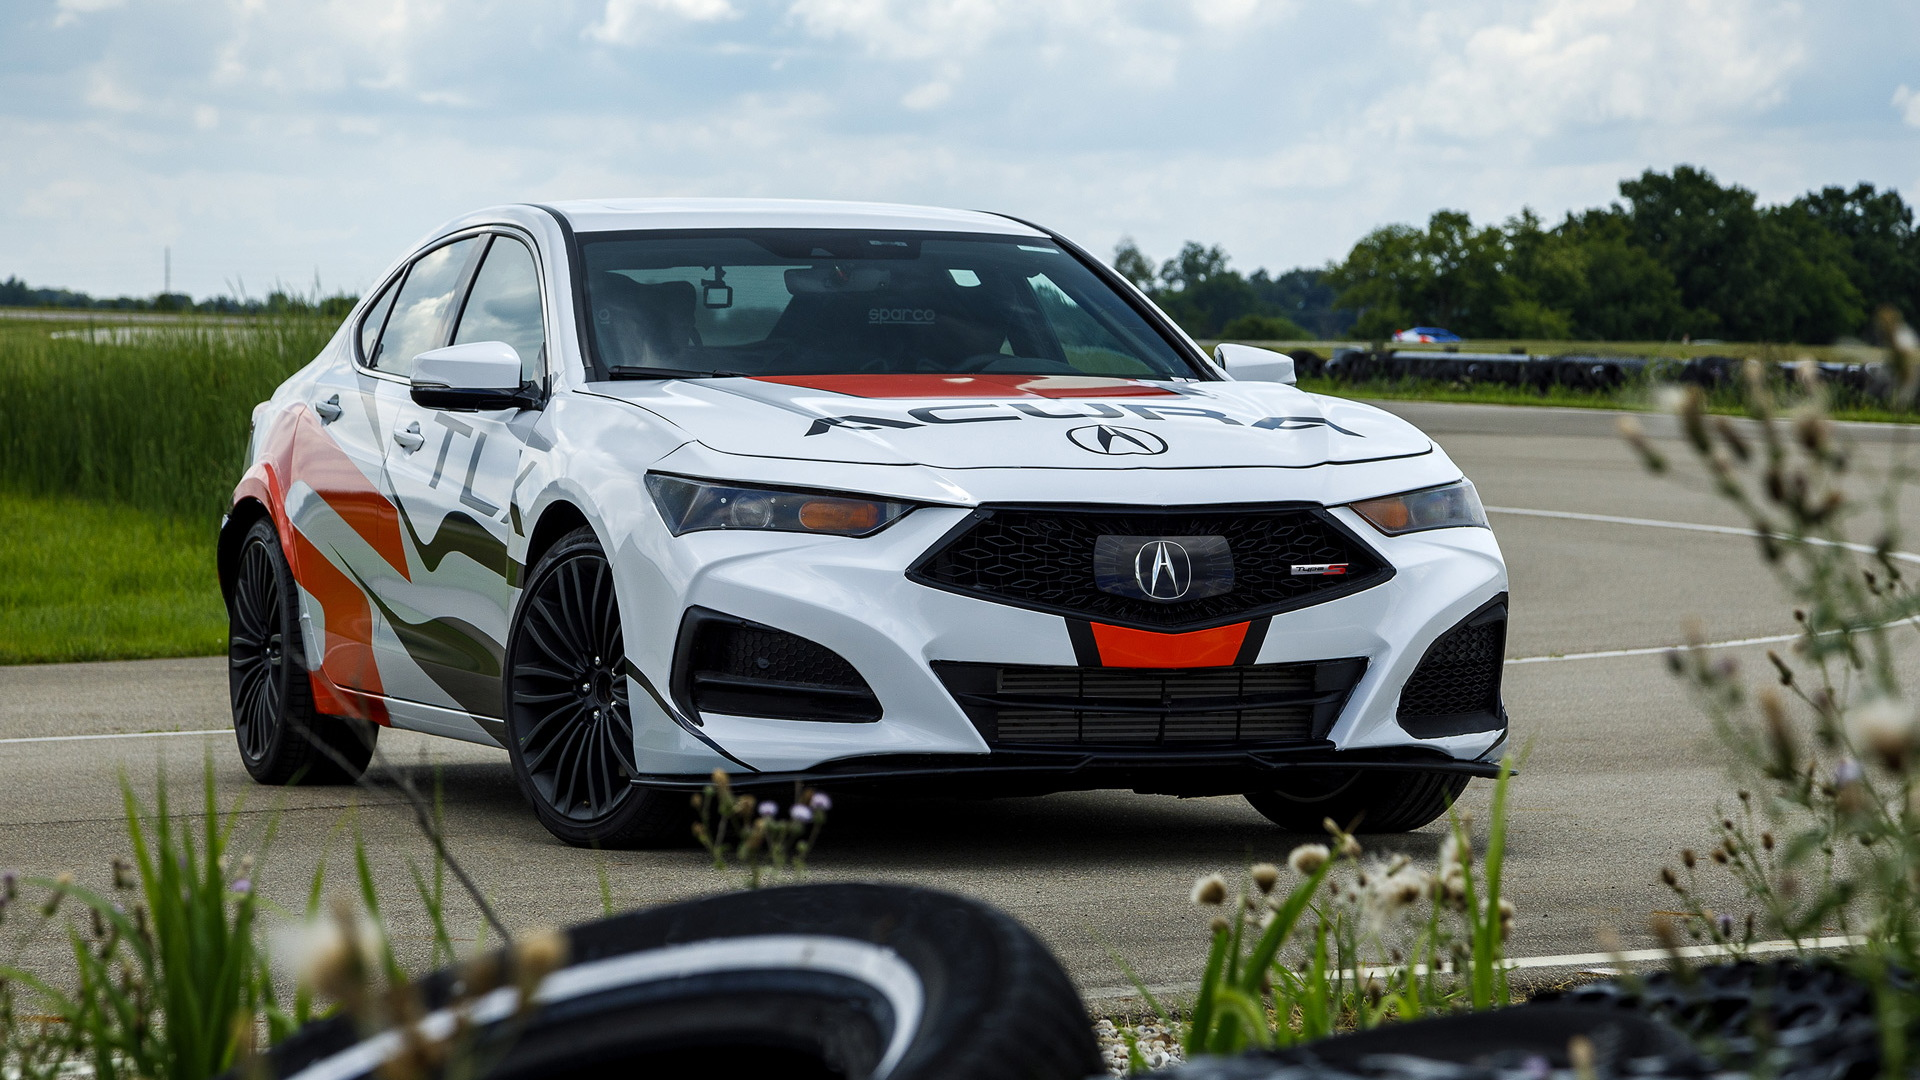 2021 Acura TLX Type S prototype to tackle 2020 Pikes Peak International Hill Climb